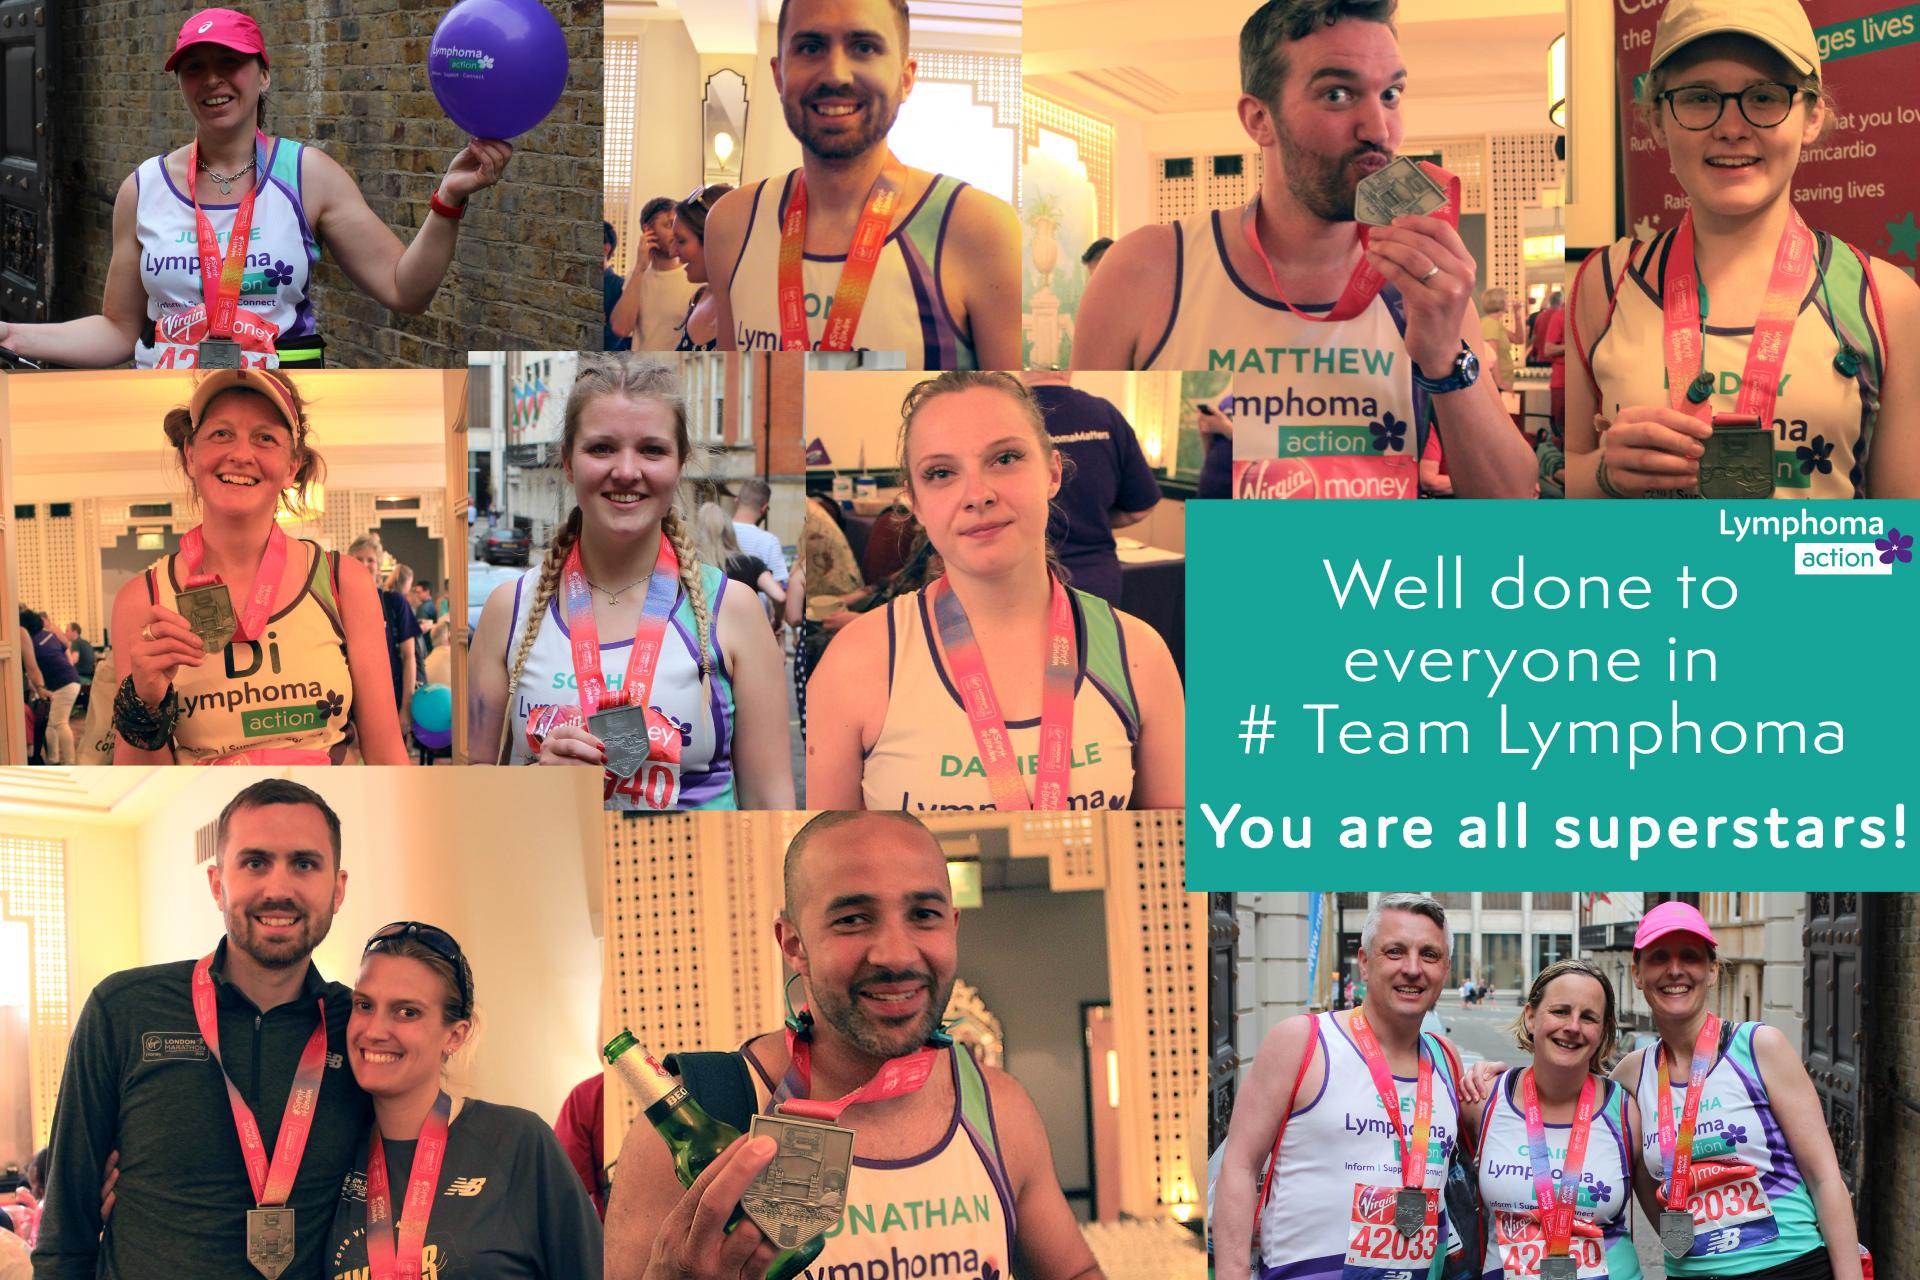 photo montage of runners from the London Marathon 2018